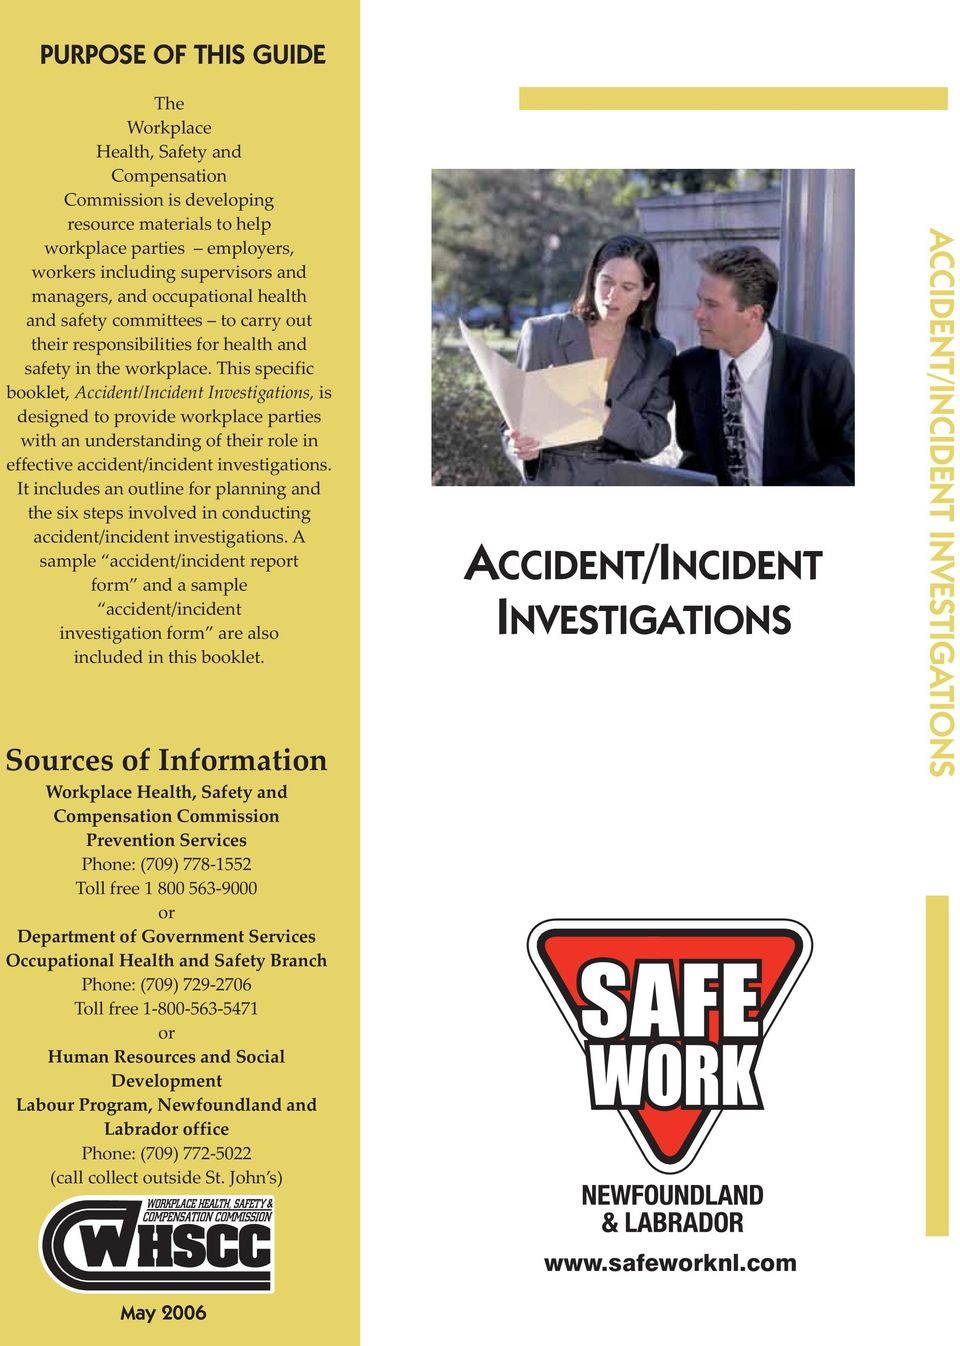 This specific booklet, Accident/Incident Investigations, is designed to provide workplace parties with an understanding of their role in effective accident/incident investigations.